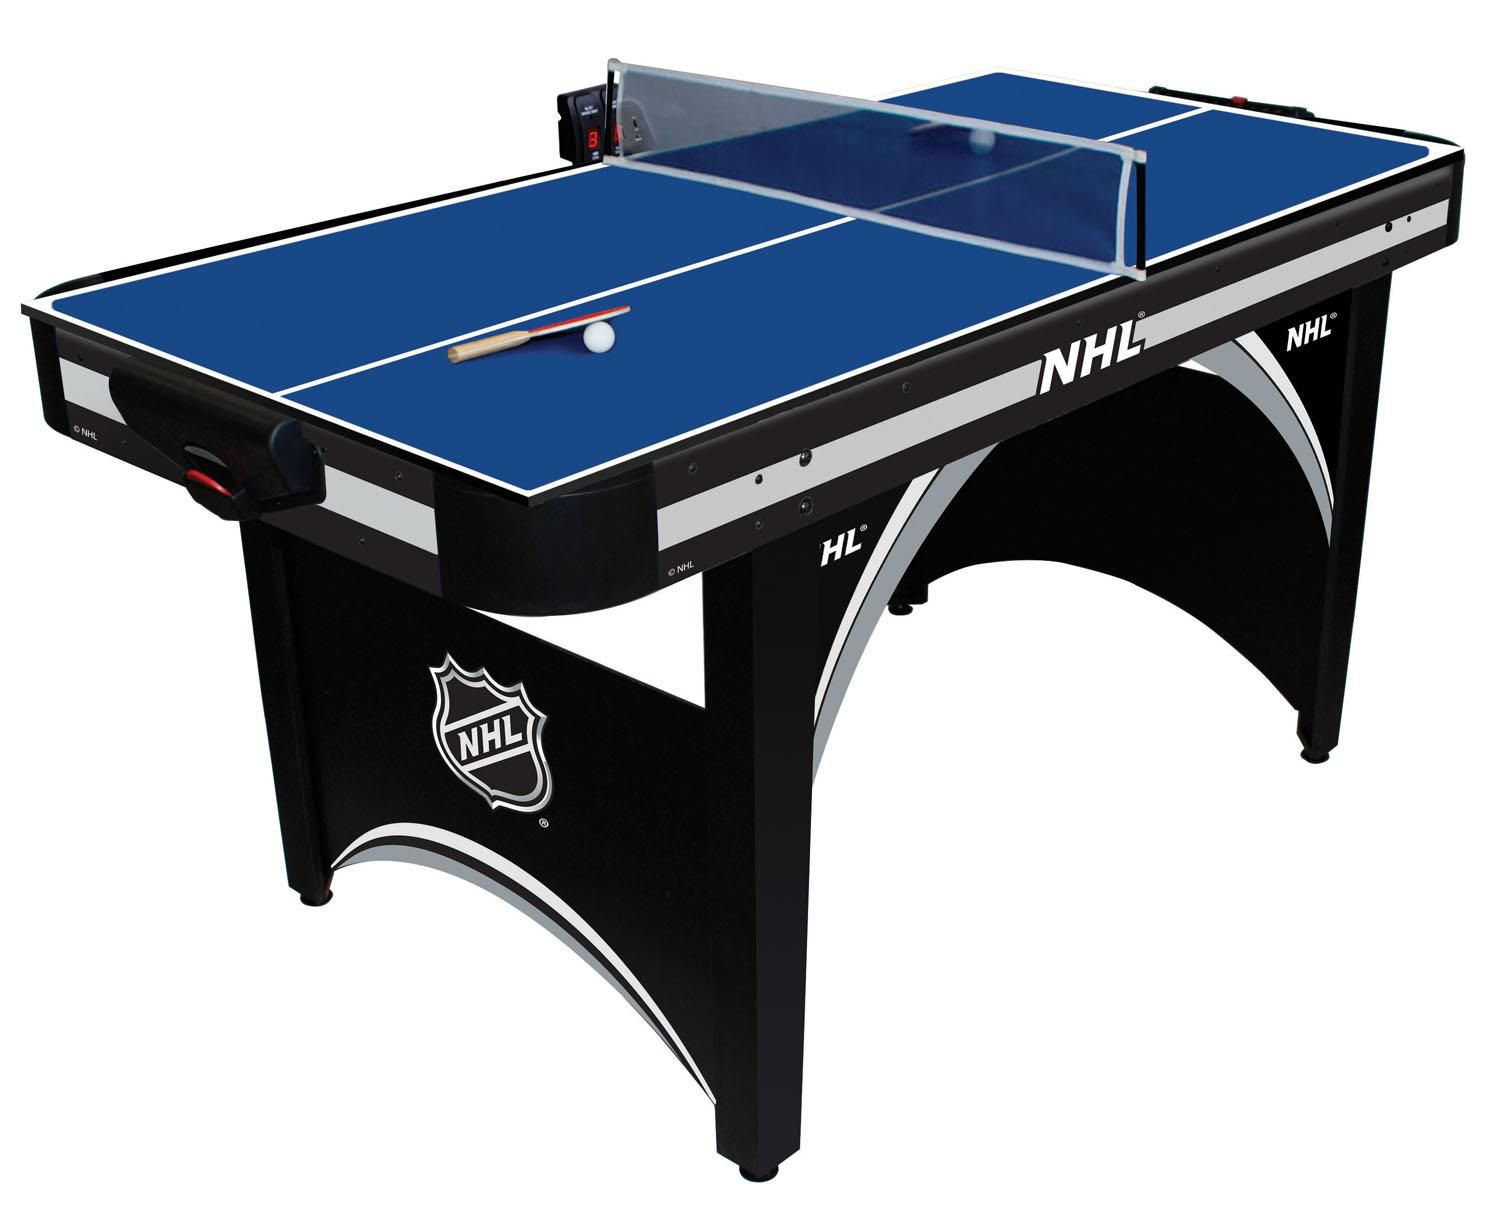 NHL 66in Air Powered Hockey Table with BONUS Table Tennis